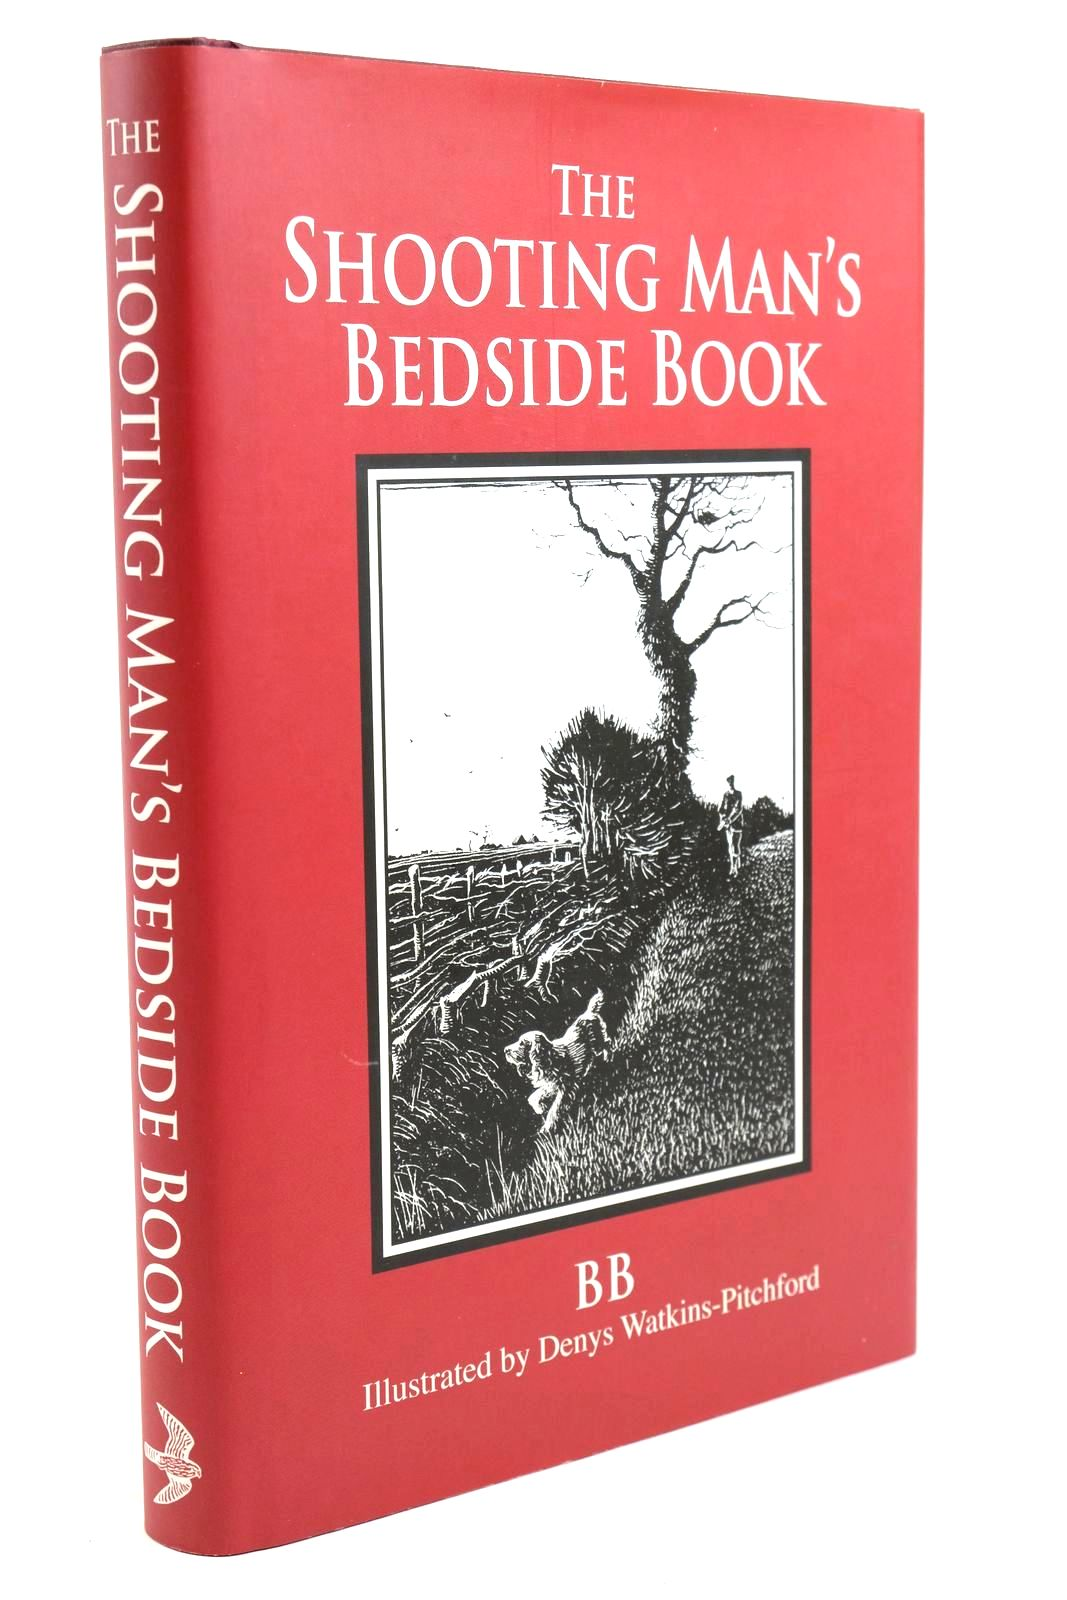 Photo of THE SHOOTING MAN'S BEDSIDE BOOK written by BB,  Hart-Davis, Duff illustrated by BB,  published by Merlin Unwin Books (STOCK CODE: 1321492)  for sale by Stella & Rose's Books